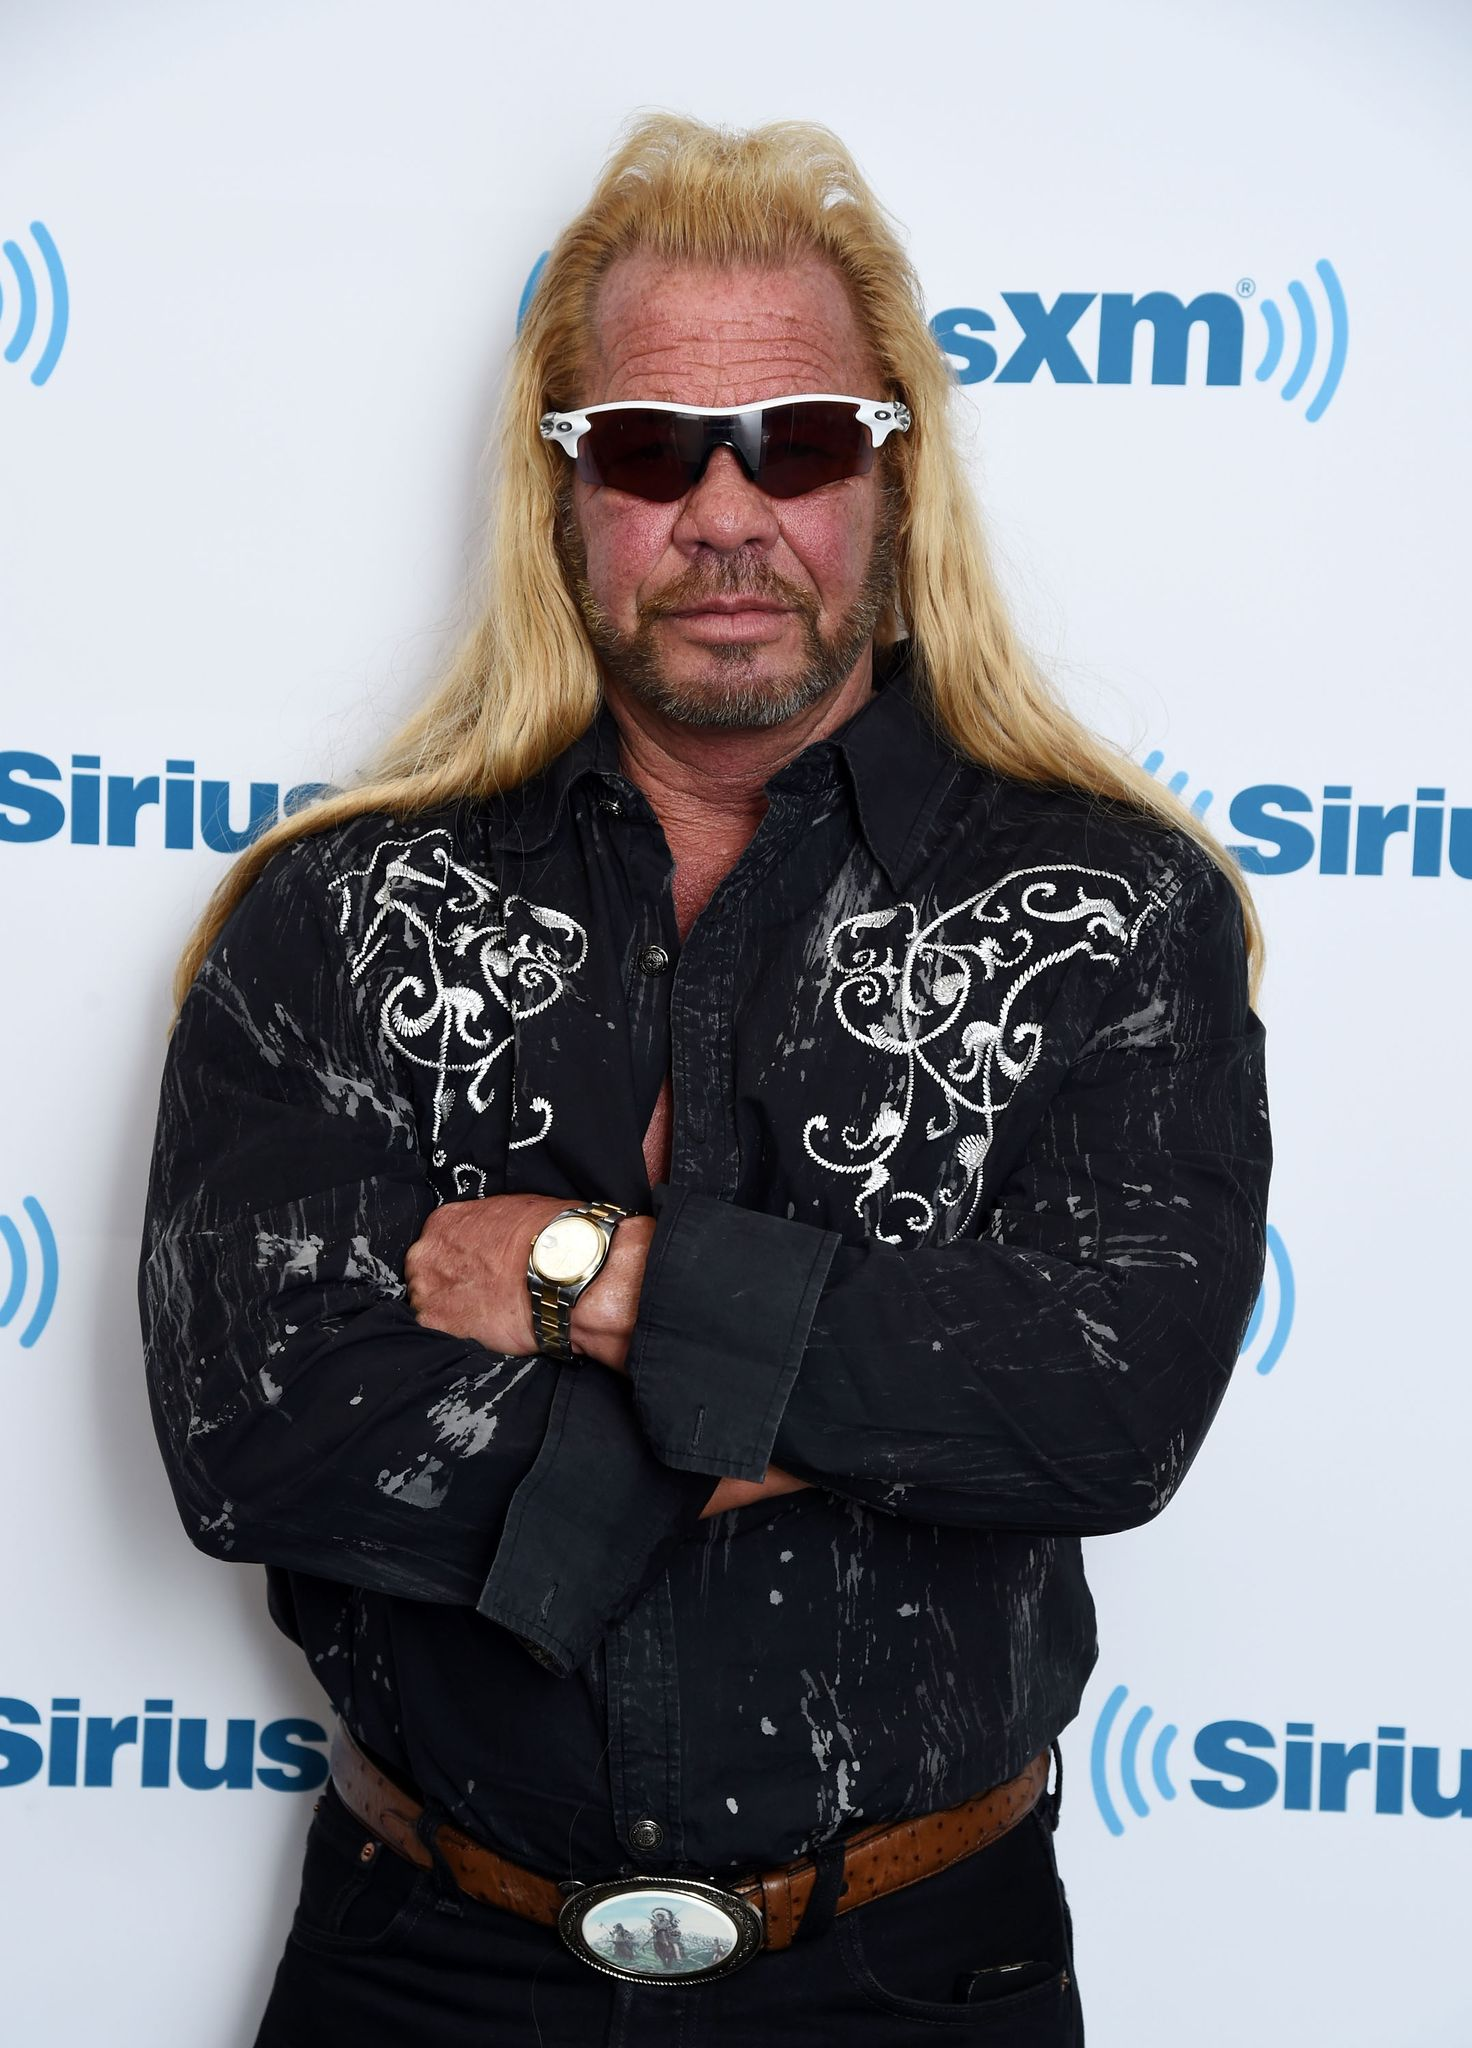 Dog the Bounty Hunter, Duane Chapman visits the SiriusXM Studios on April 24, 2015 in New York City.   Photo: Getty Images